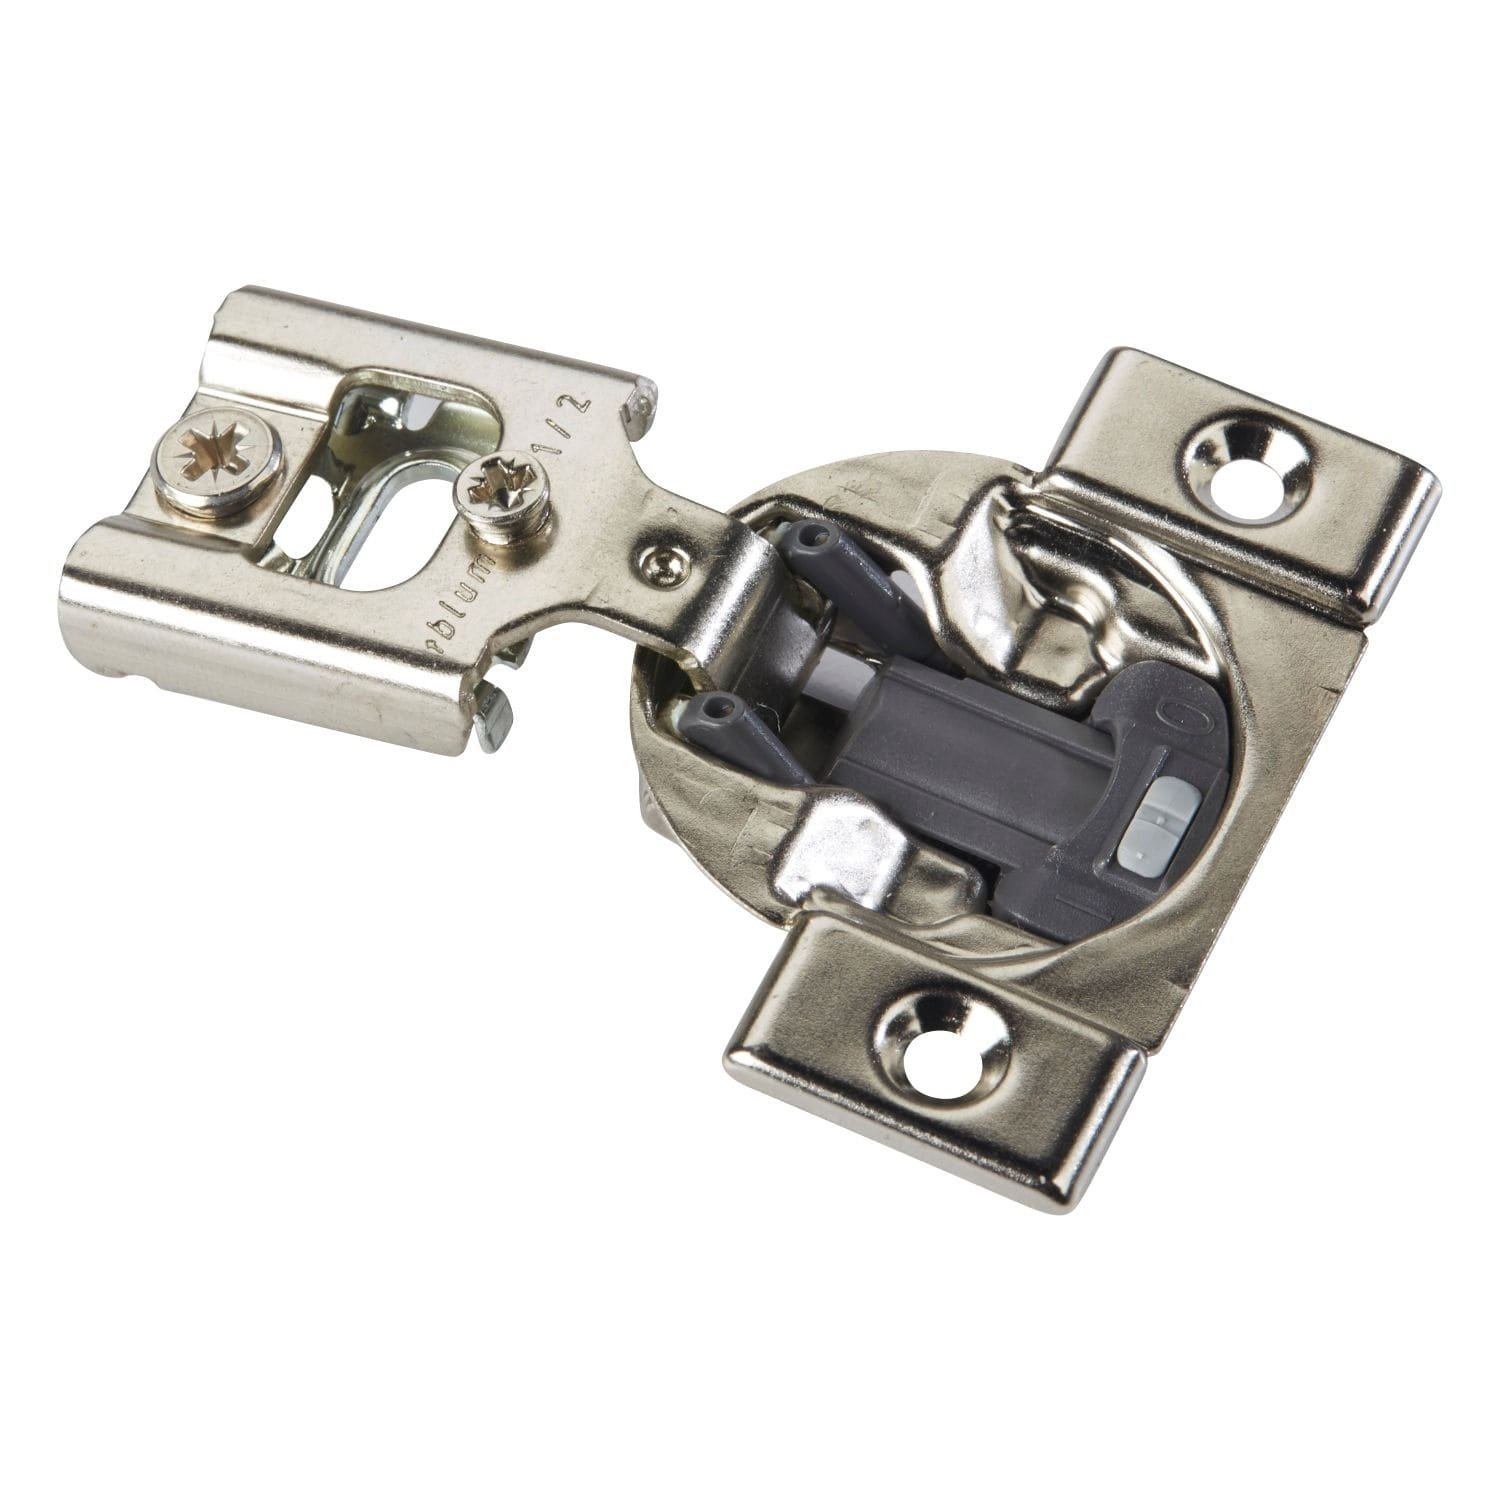 Blum Silver-finished Metal Screw-on Self-closing Cabinet Hinge (Case of 50)